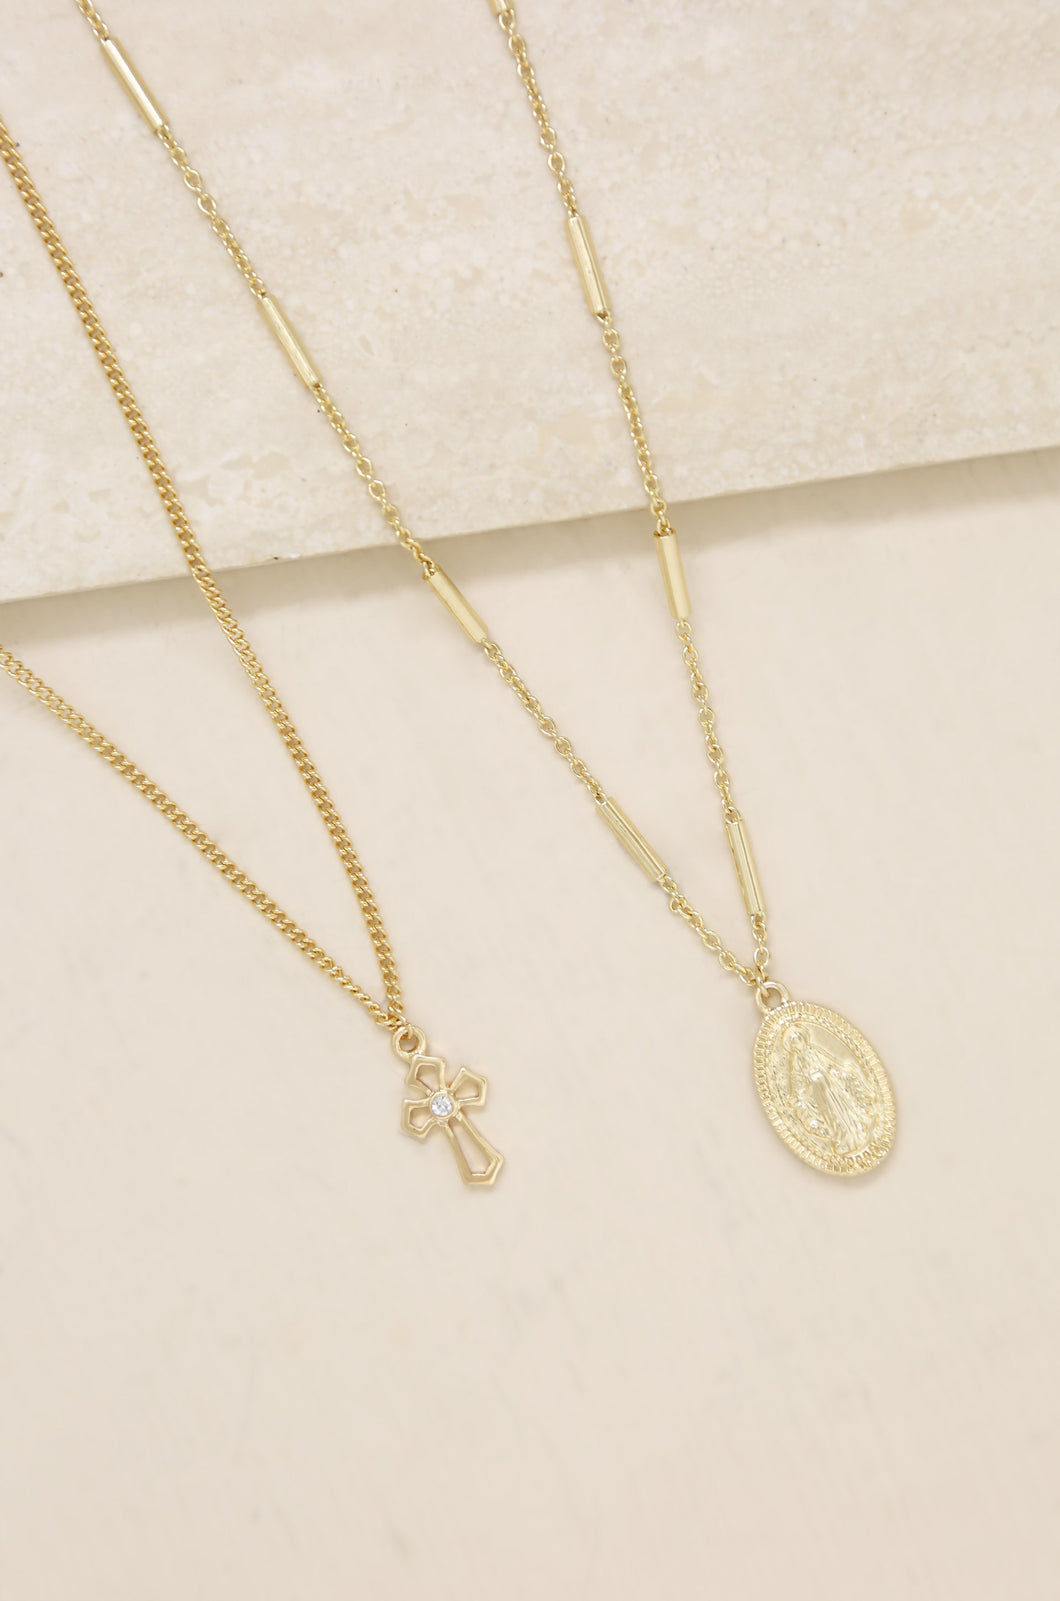 Memento Cross and Coin 18k Gold Plated Necklace Set